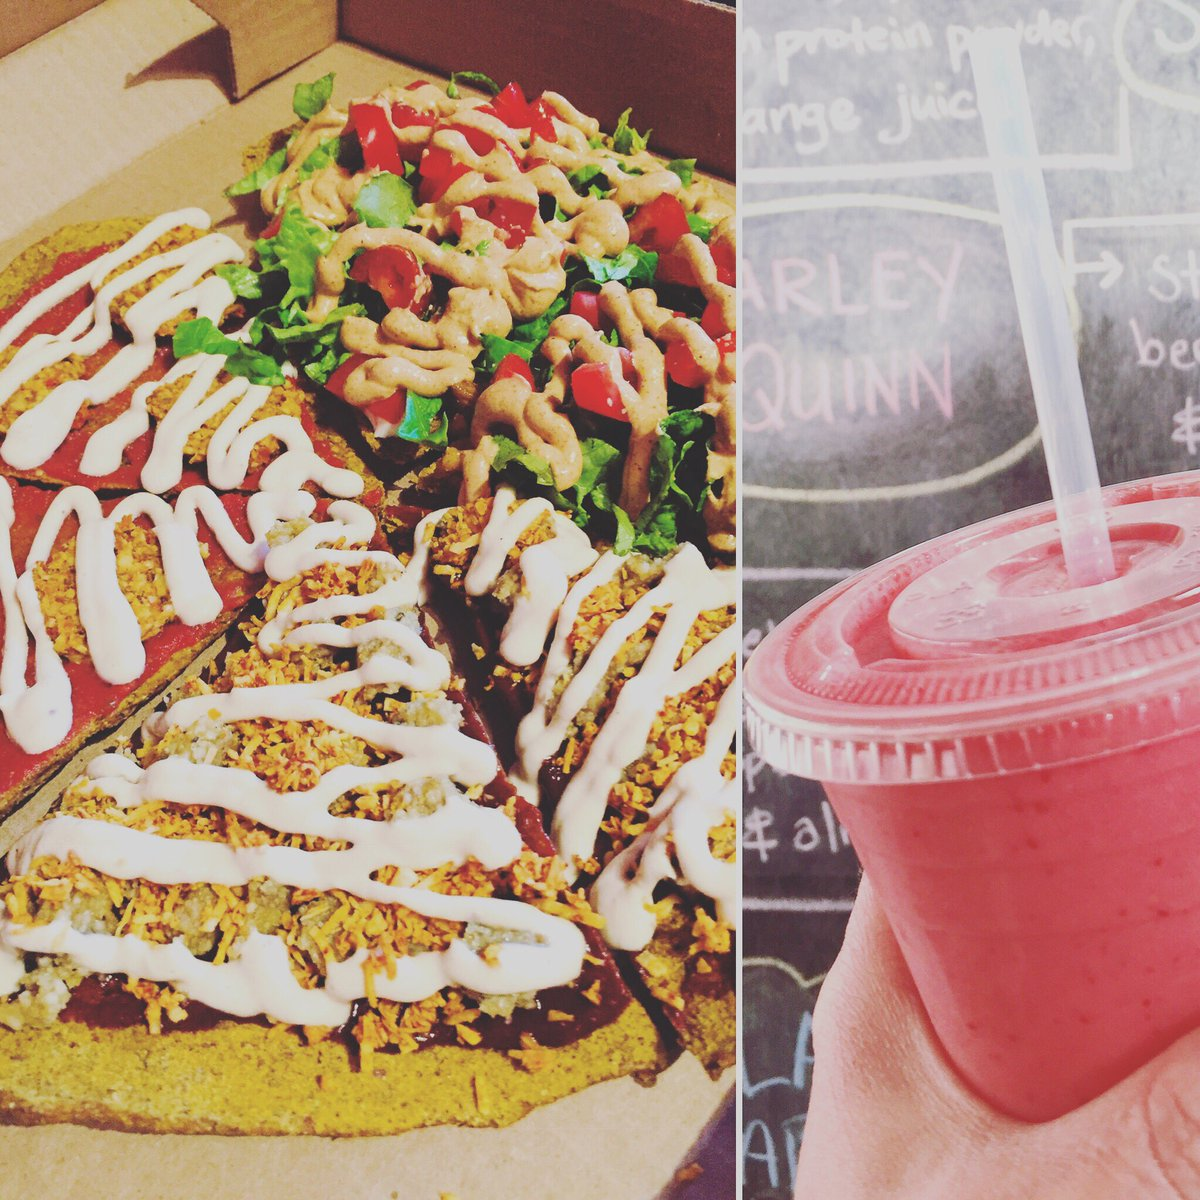 """It's all about our ridiculous raw thin crust #pizza & #smoothies all day Tuesday at Vegan Hippie-Chick on Fort 🍕👈 2-for-1 slices or full 8"""".. mix&match toppings too!  #veganpizza #rawvegan #glutenfree #foodgasm #veganaf #cashewcheese #yyjeats #jvr #shoplocalyyj #uvic #camoson"""